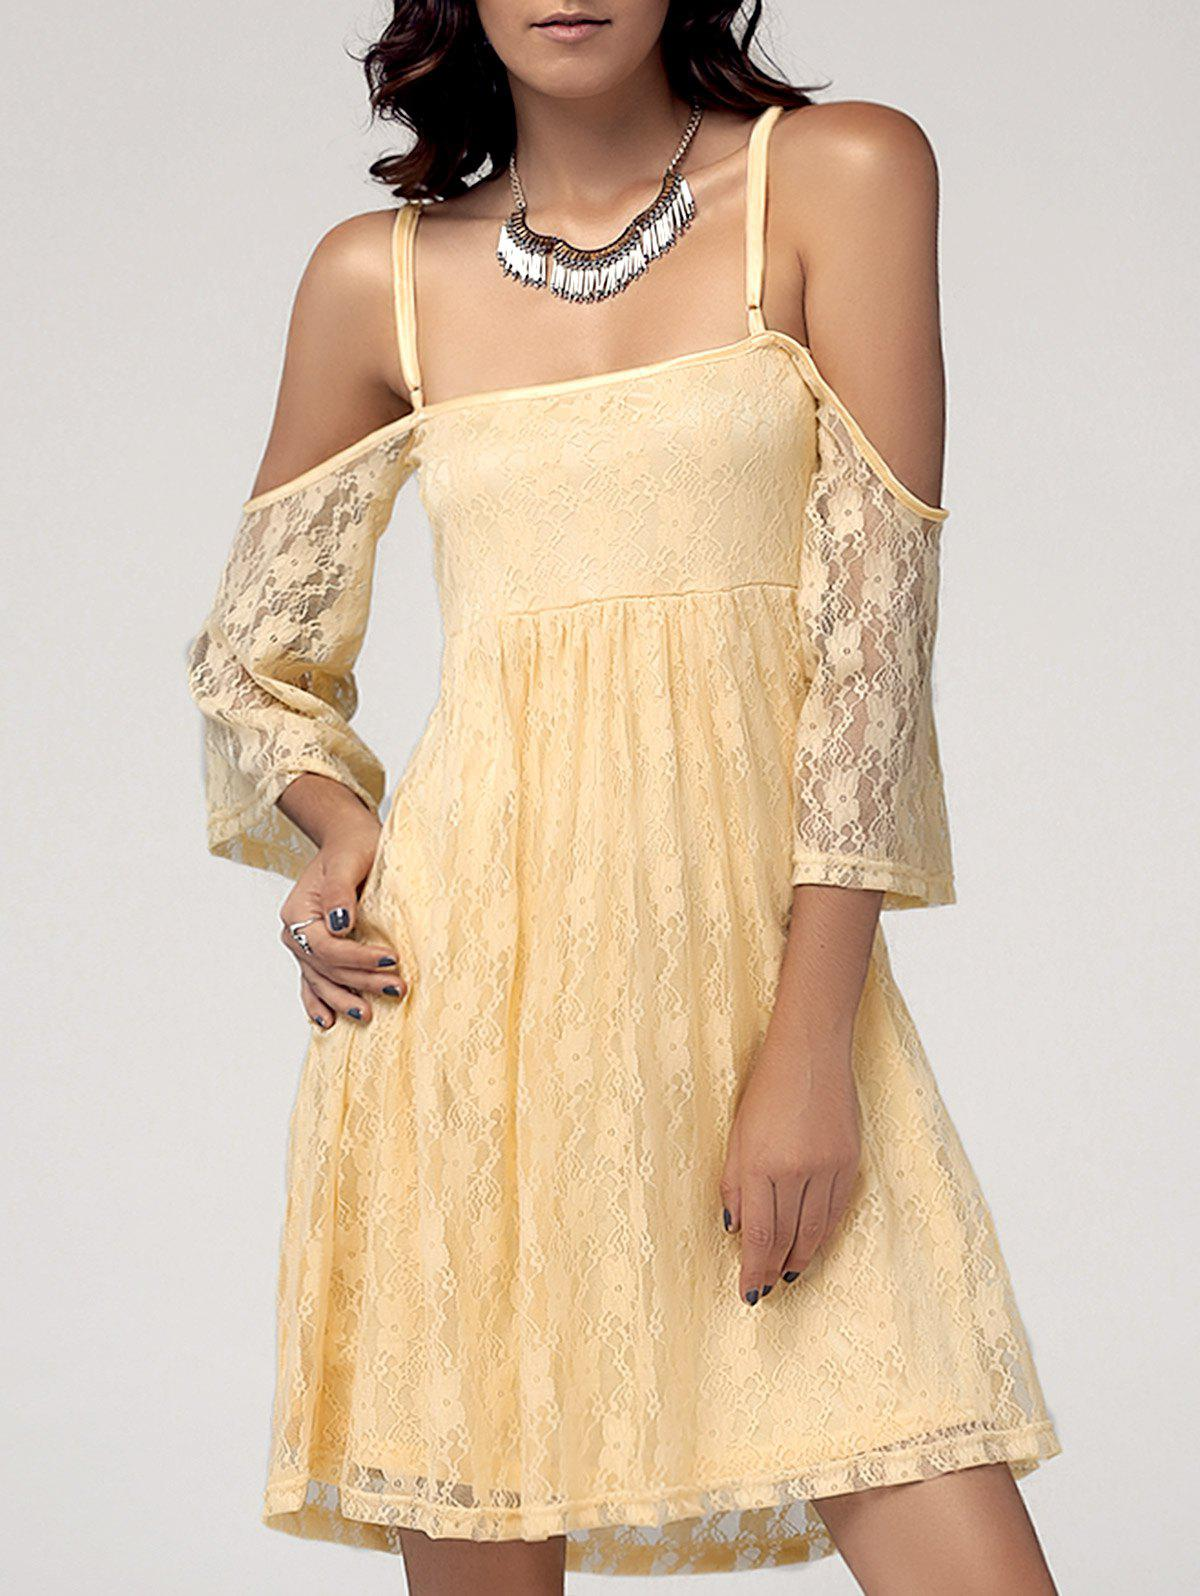 Sweet Women's Spaghetti Straps Cold Shoulder Lace Dress - YELLOW M